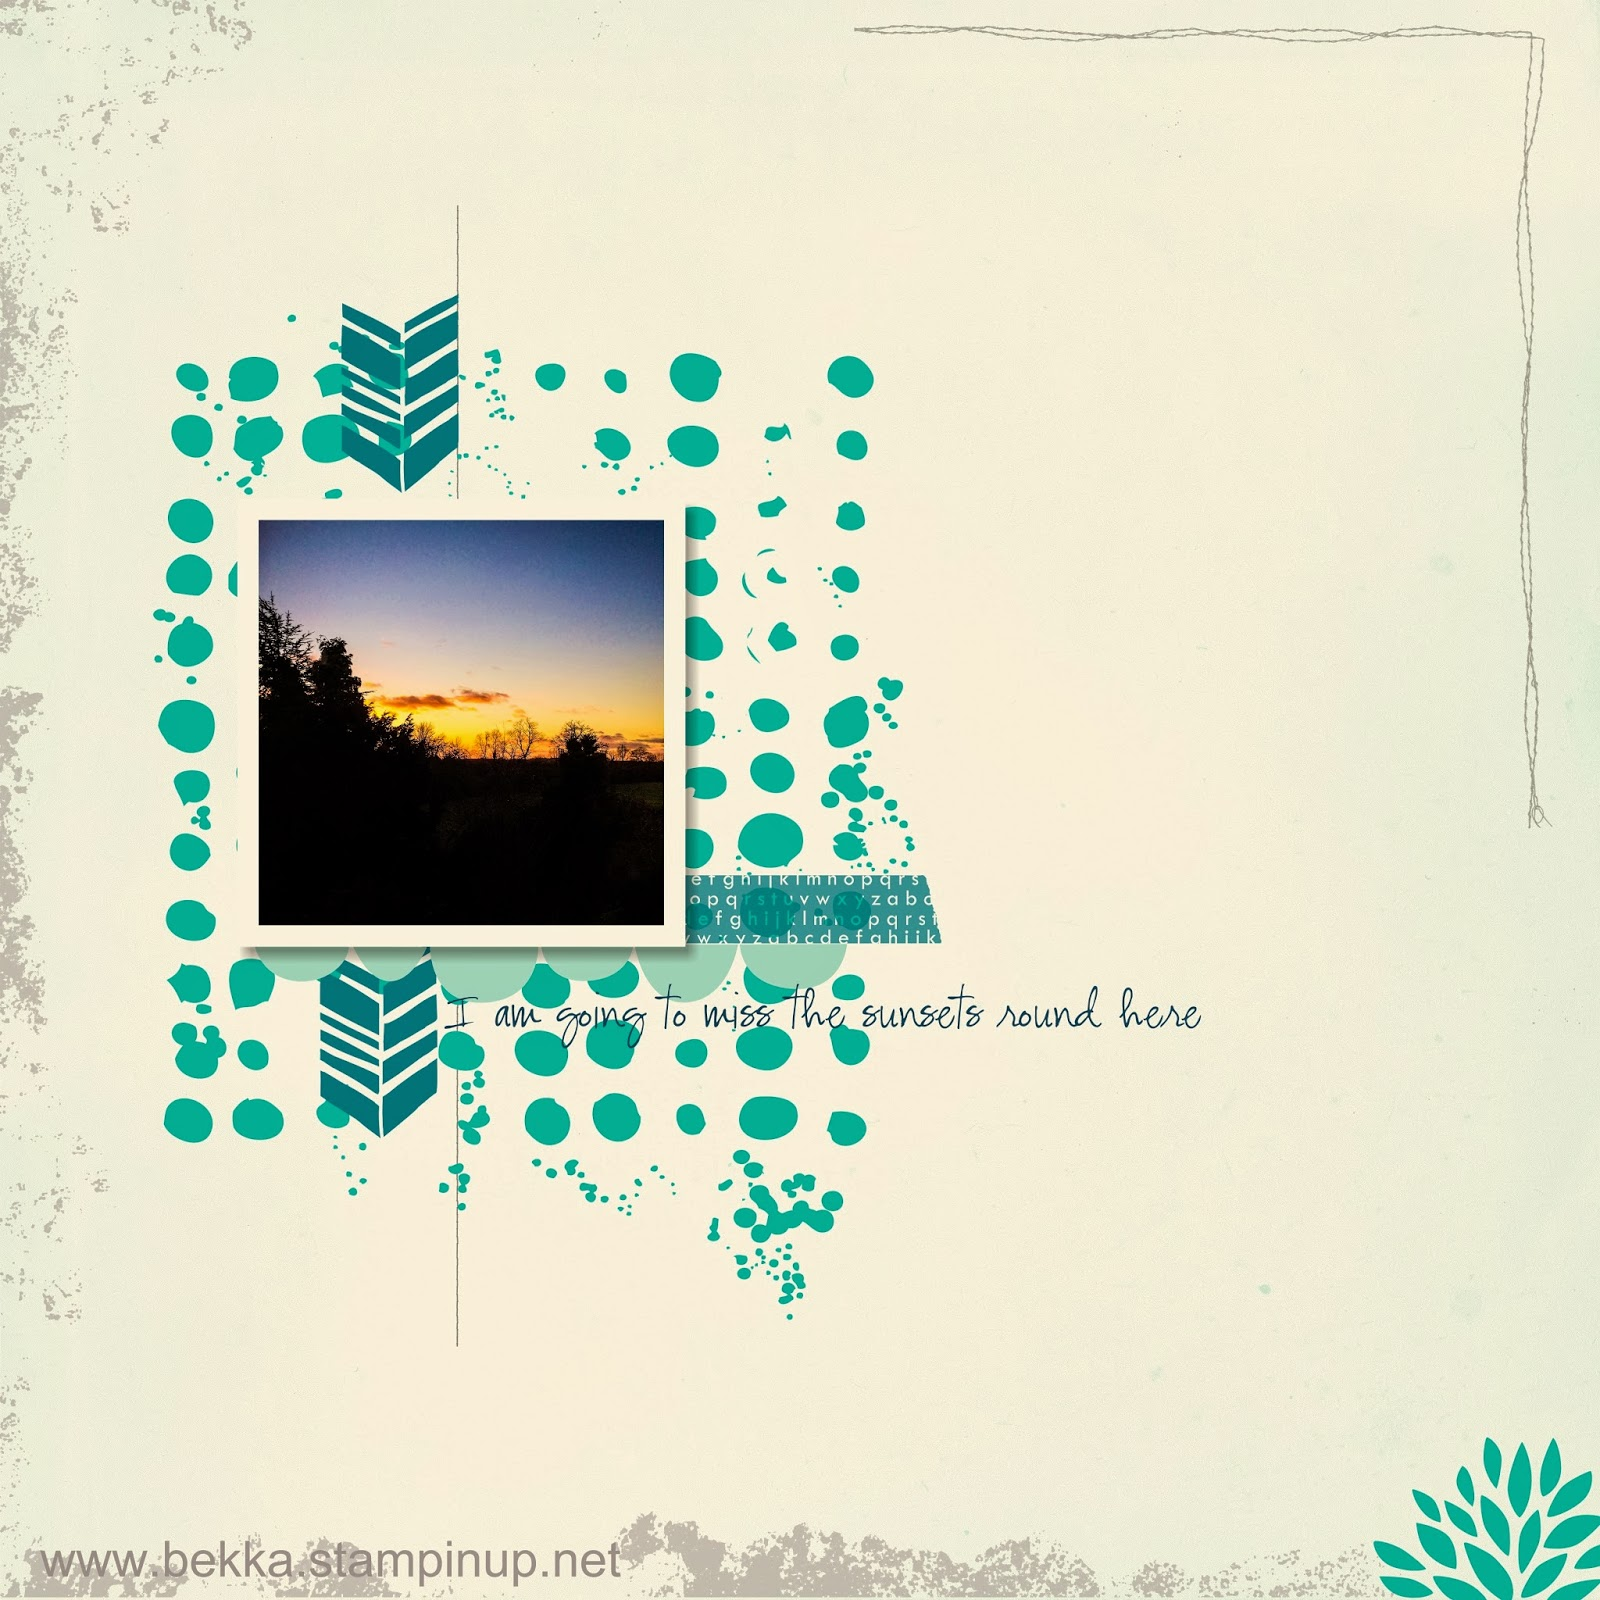 Digital Scrapbook Page featuring some new Free Downloads - check this out!